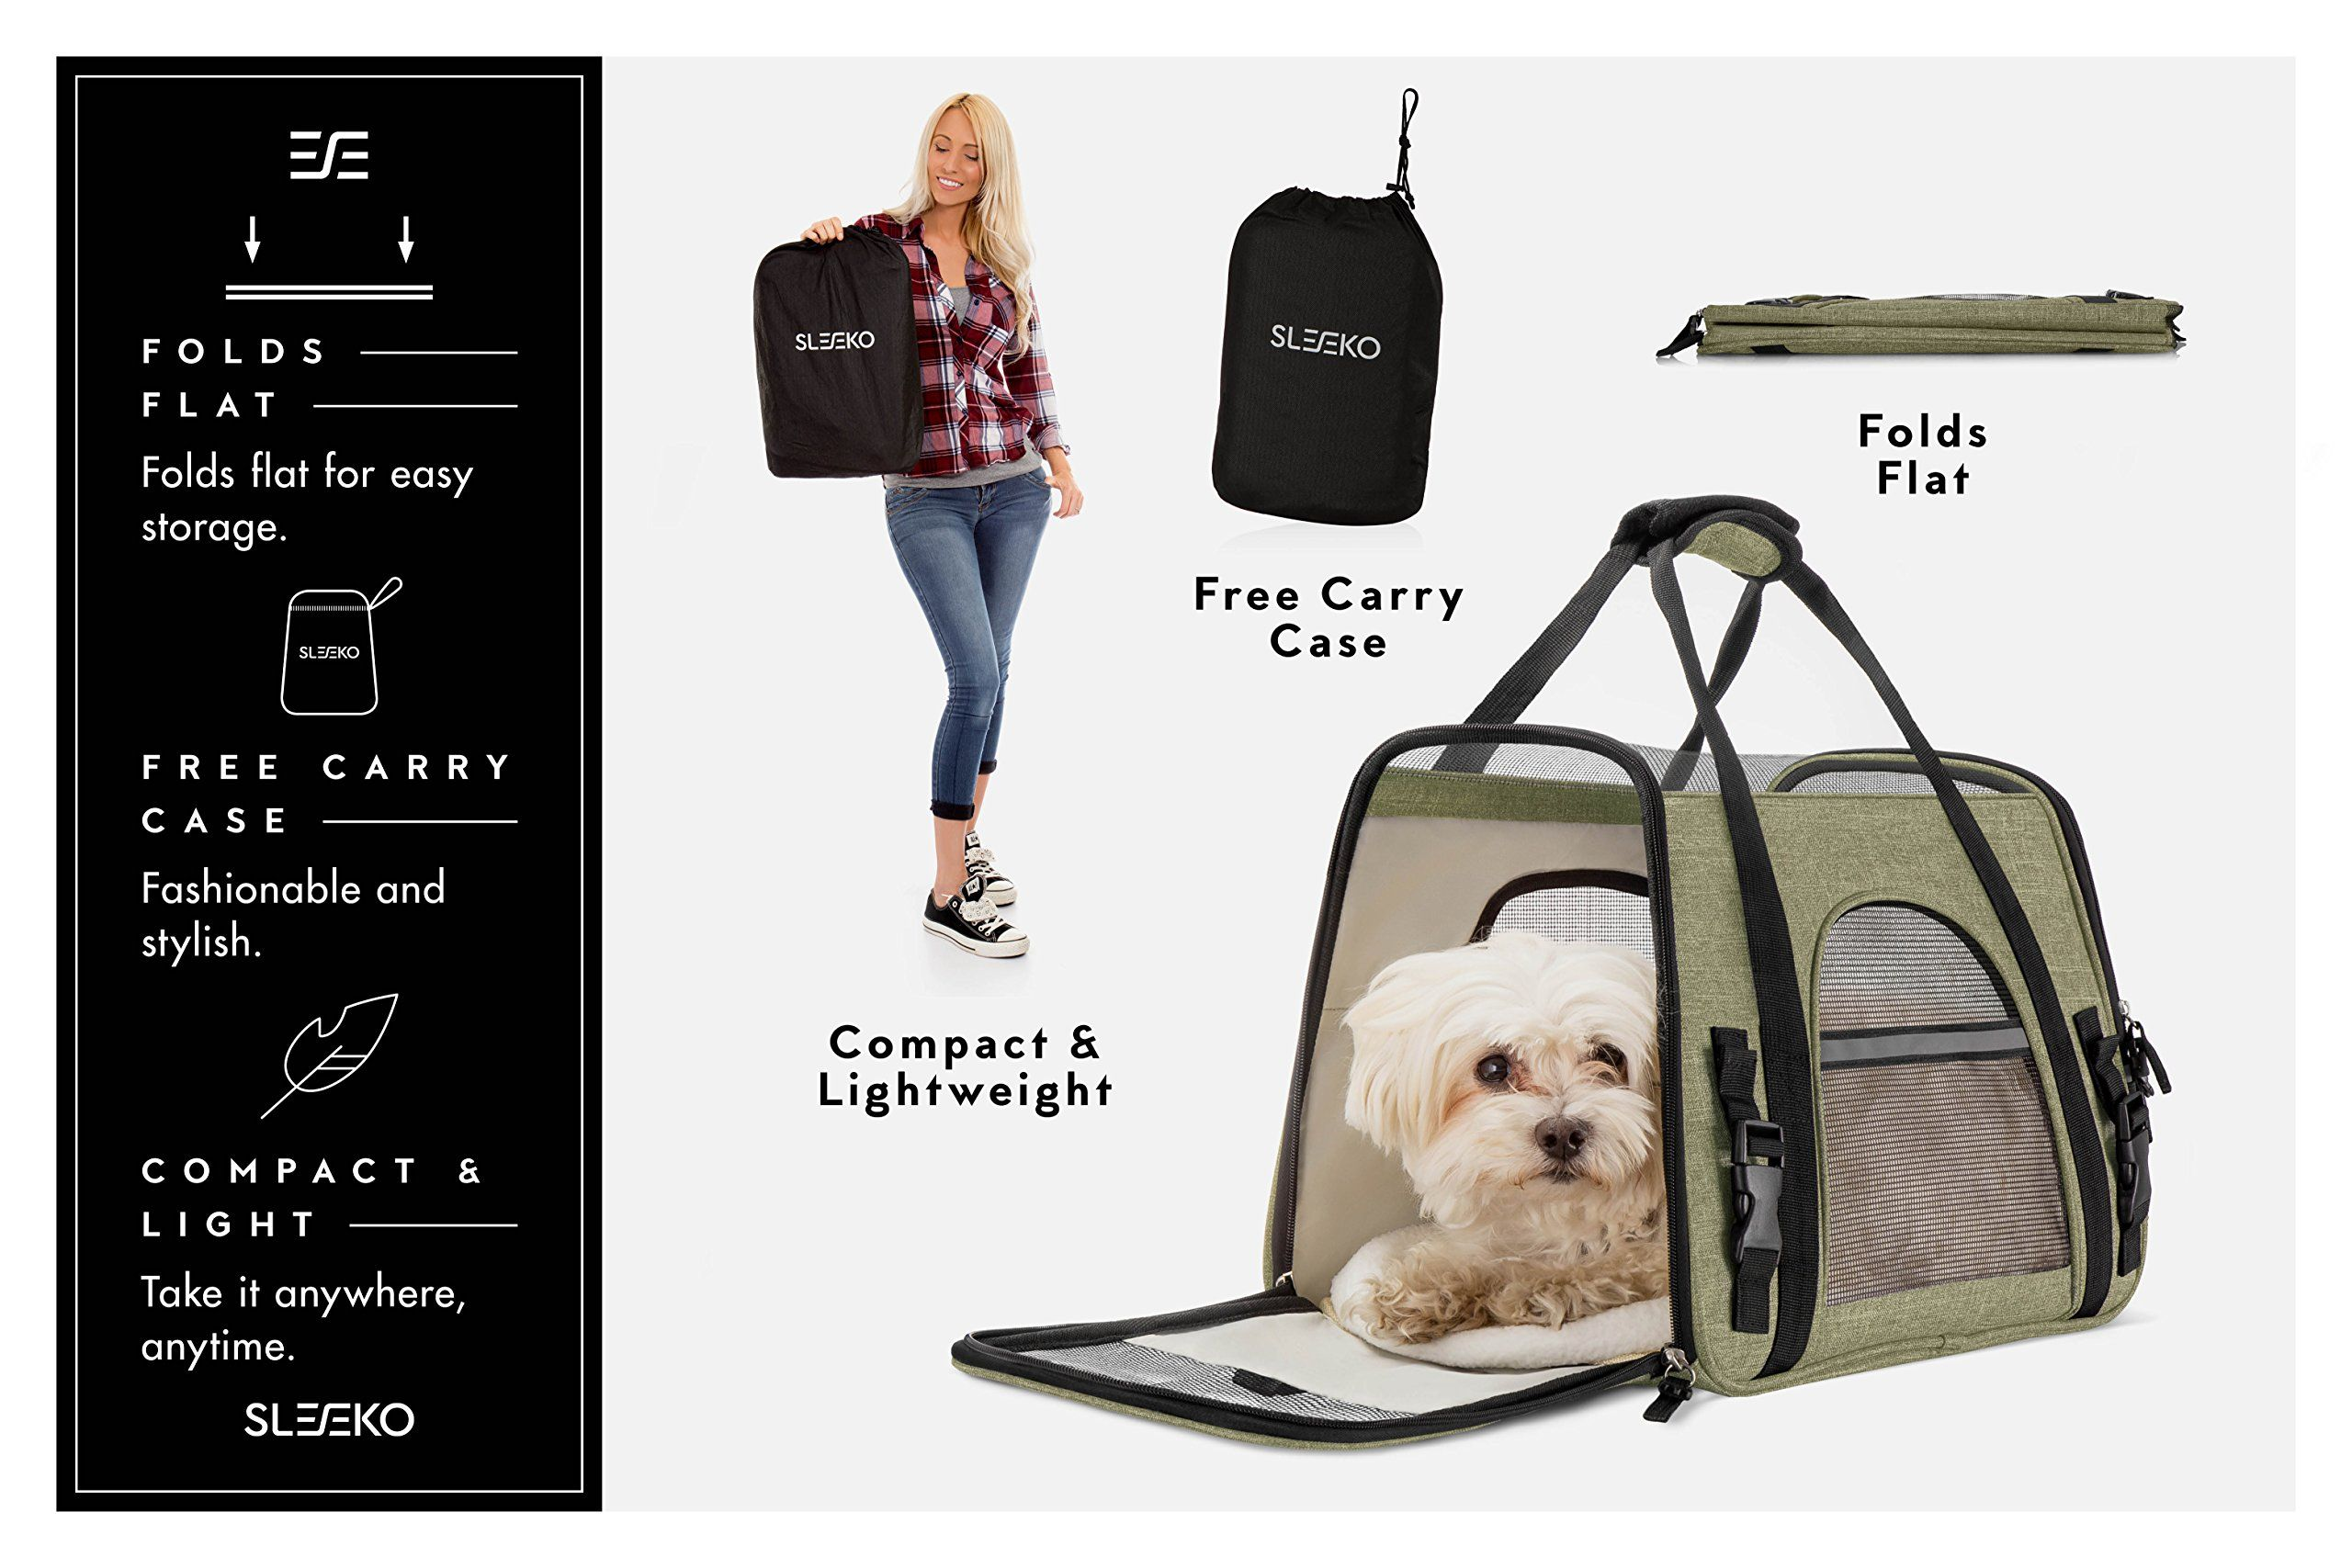 Premium Airline Approved Pet Carrier Under Seat For Dogs And Cats Airplane Travel Bag With 2 Fleece Pads And Stor Luxury Pet Carrier Pet Travel Bag Luxury Pet